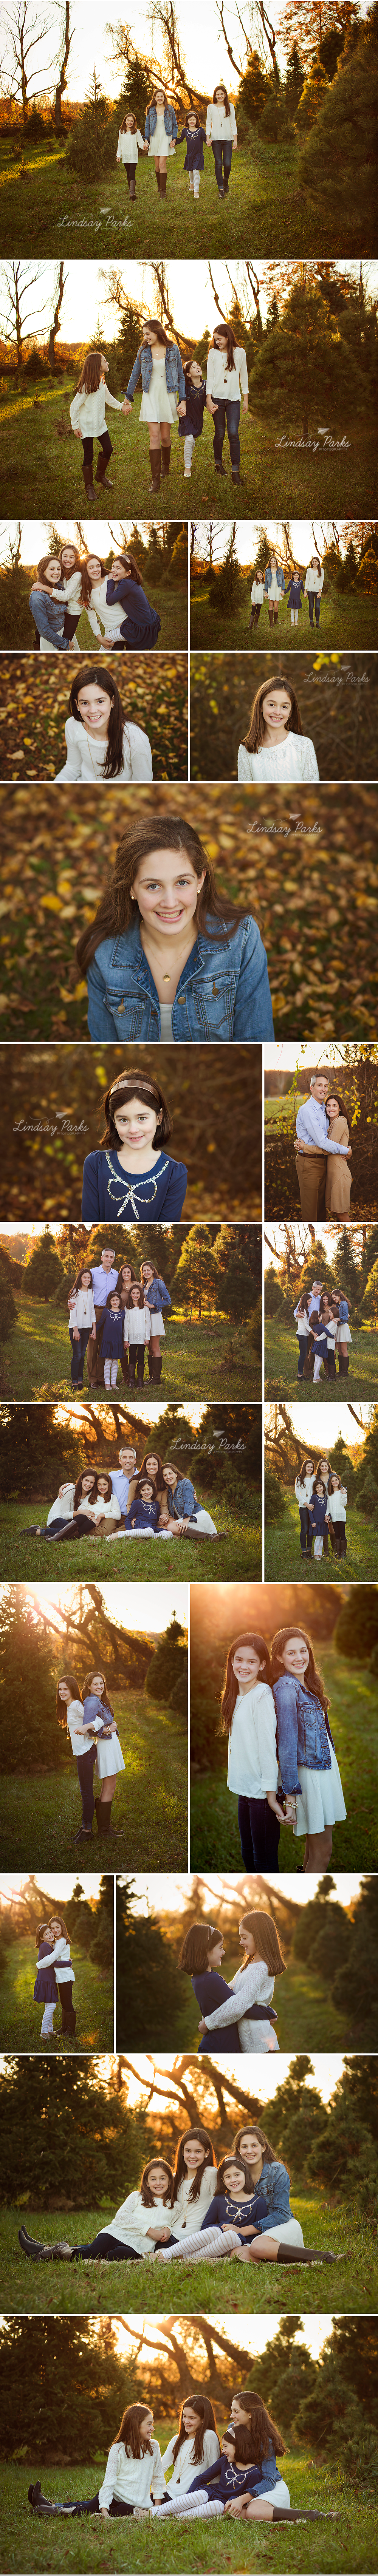 harfordcountymarylandfamilyphotographermelch